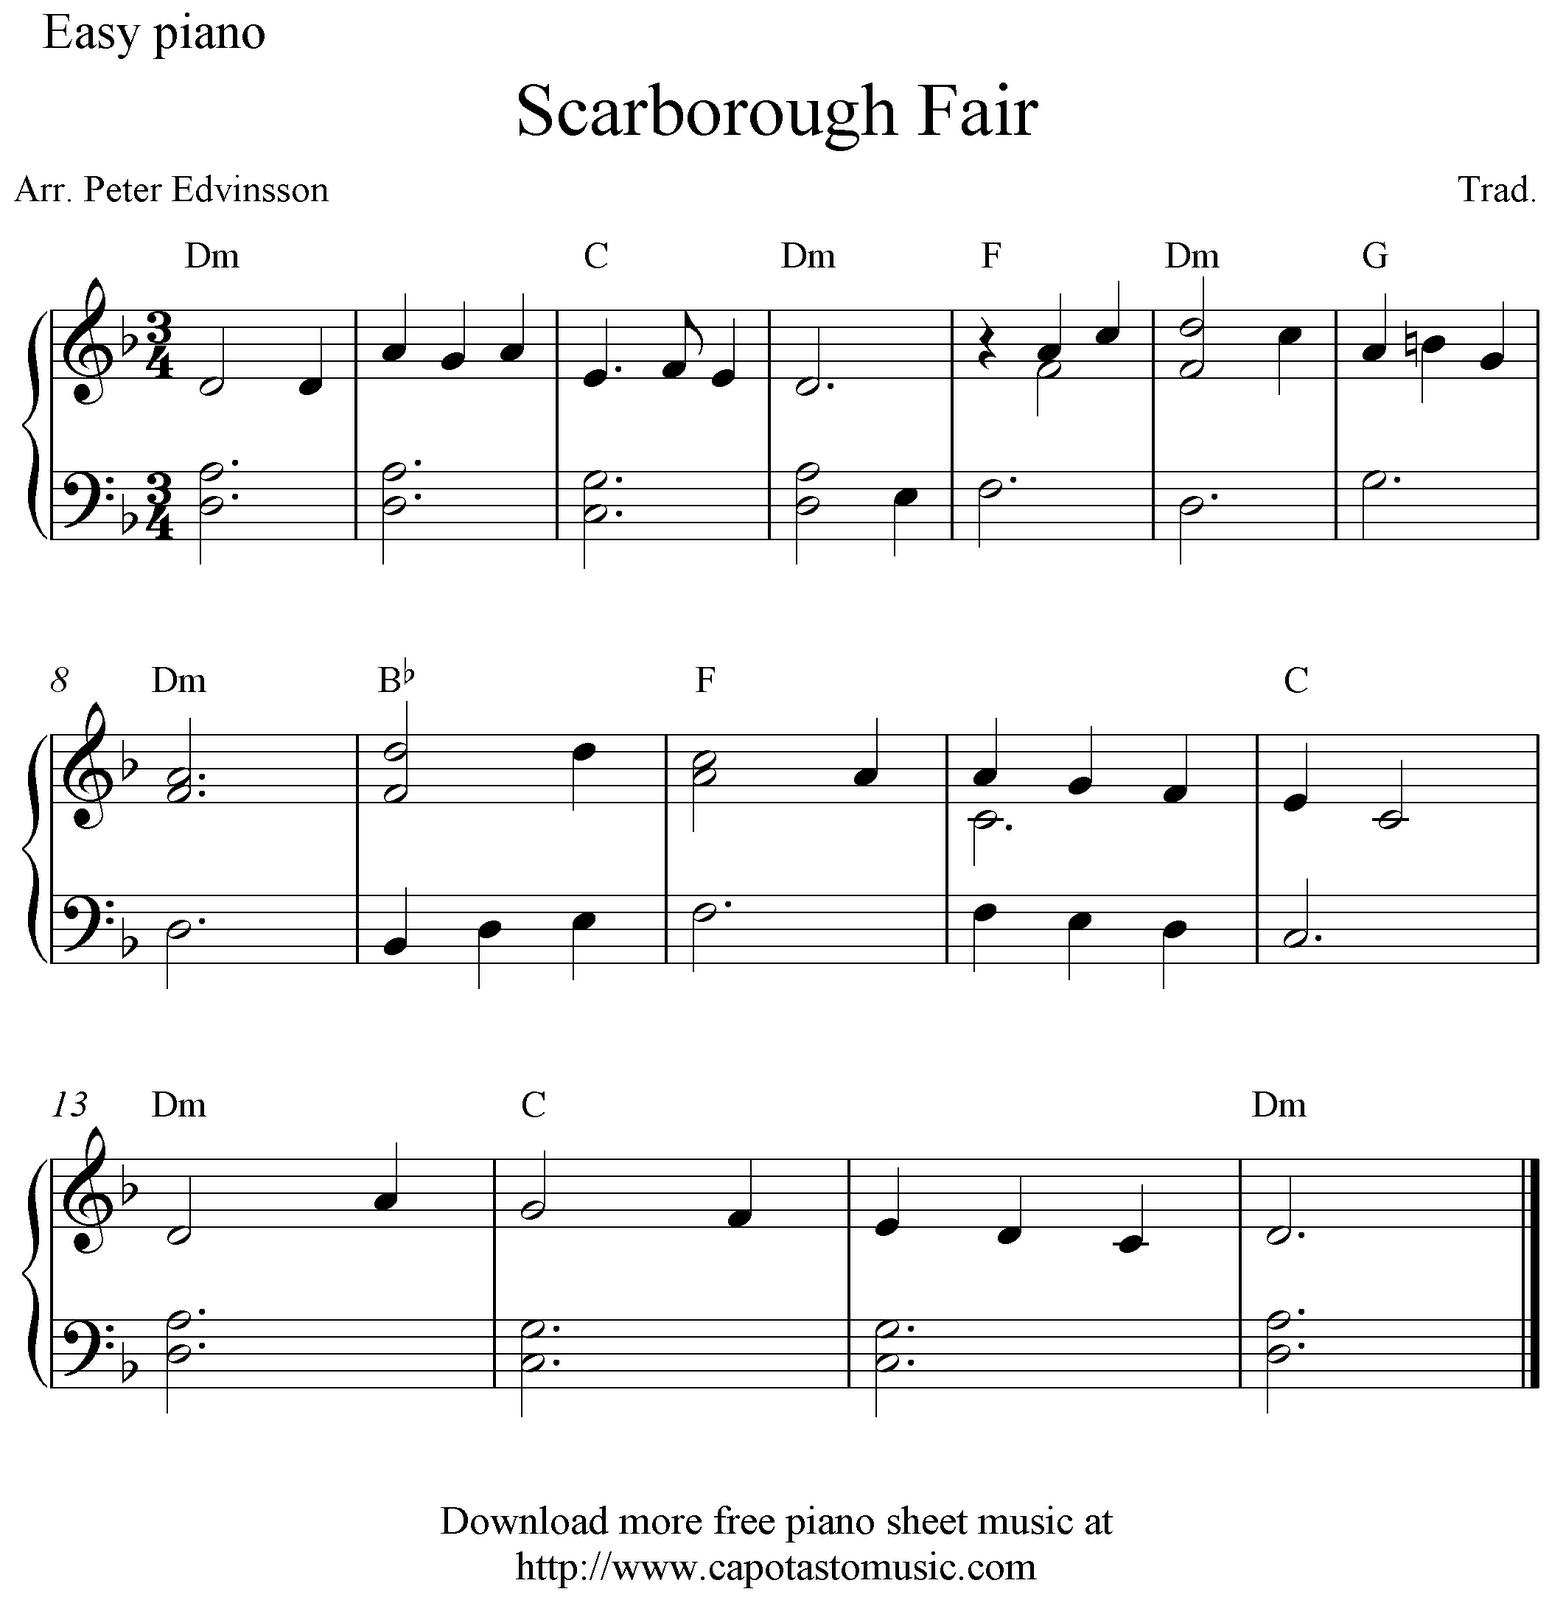 Free Easy Piano Sheet Music Score, Scarborough Fair